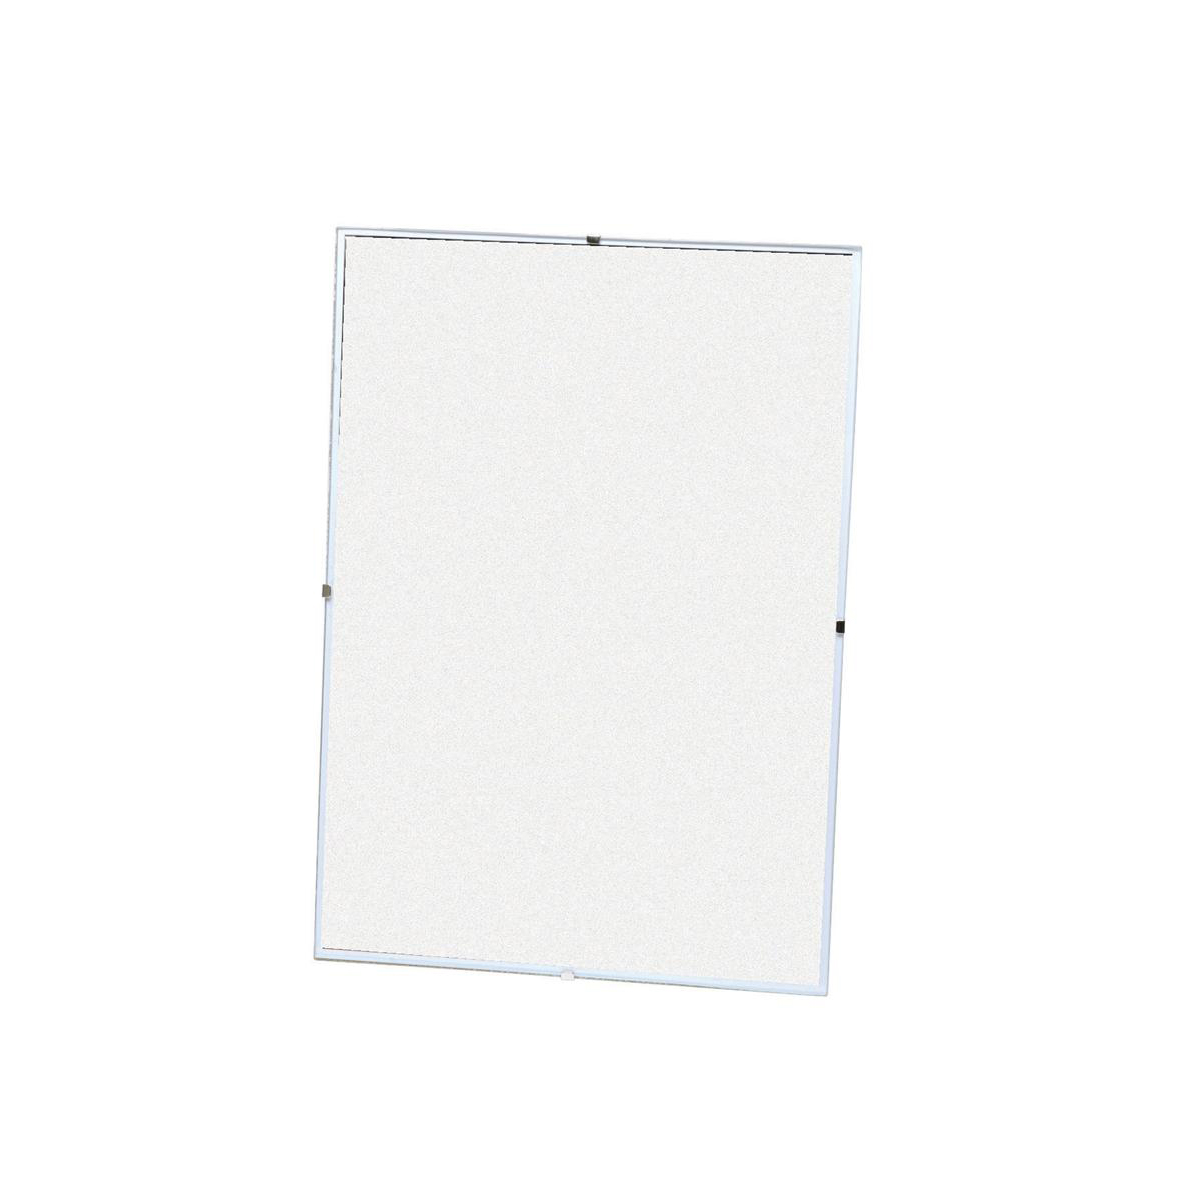 Certificate / Photo Frames 5 Star Office Clip Frame Plastic Front for Wall-mounting Back-loading A1 840x594mm Clear